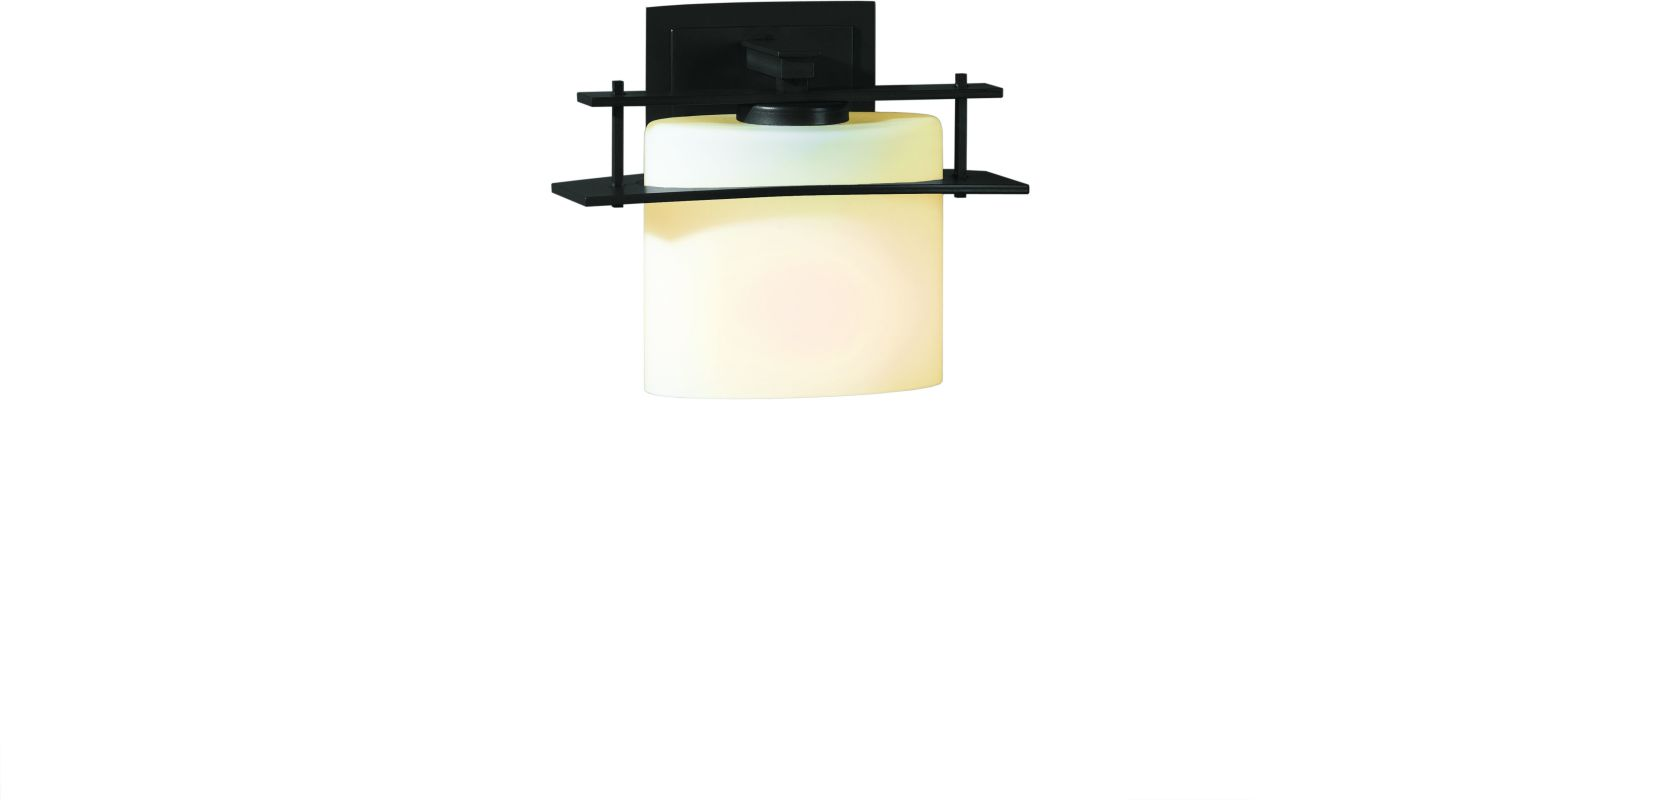 Hubbardton Forge 207521 Single Light Down Lighting ADA Wall Sconce Sale $457.60 ITEM#: 1164104 MODEL# :207521-10 :